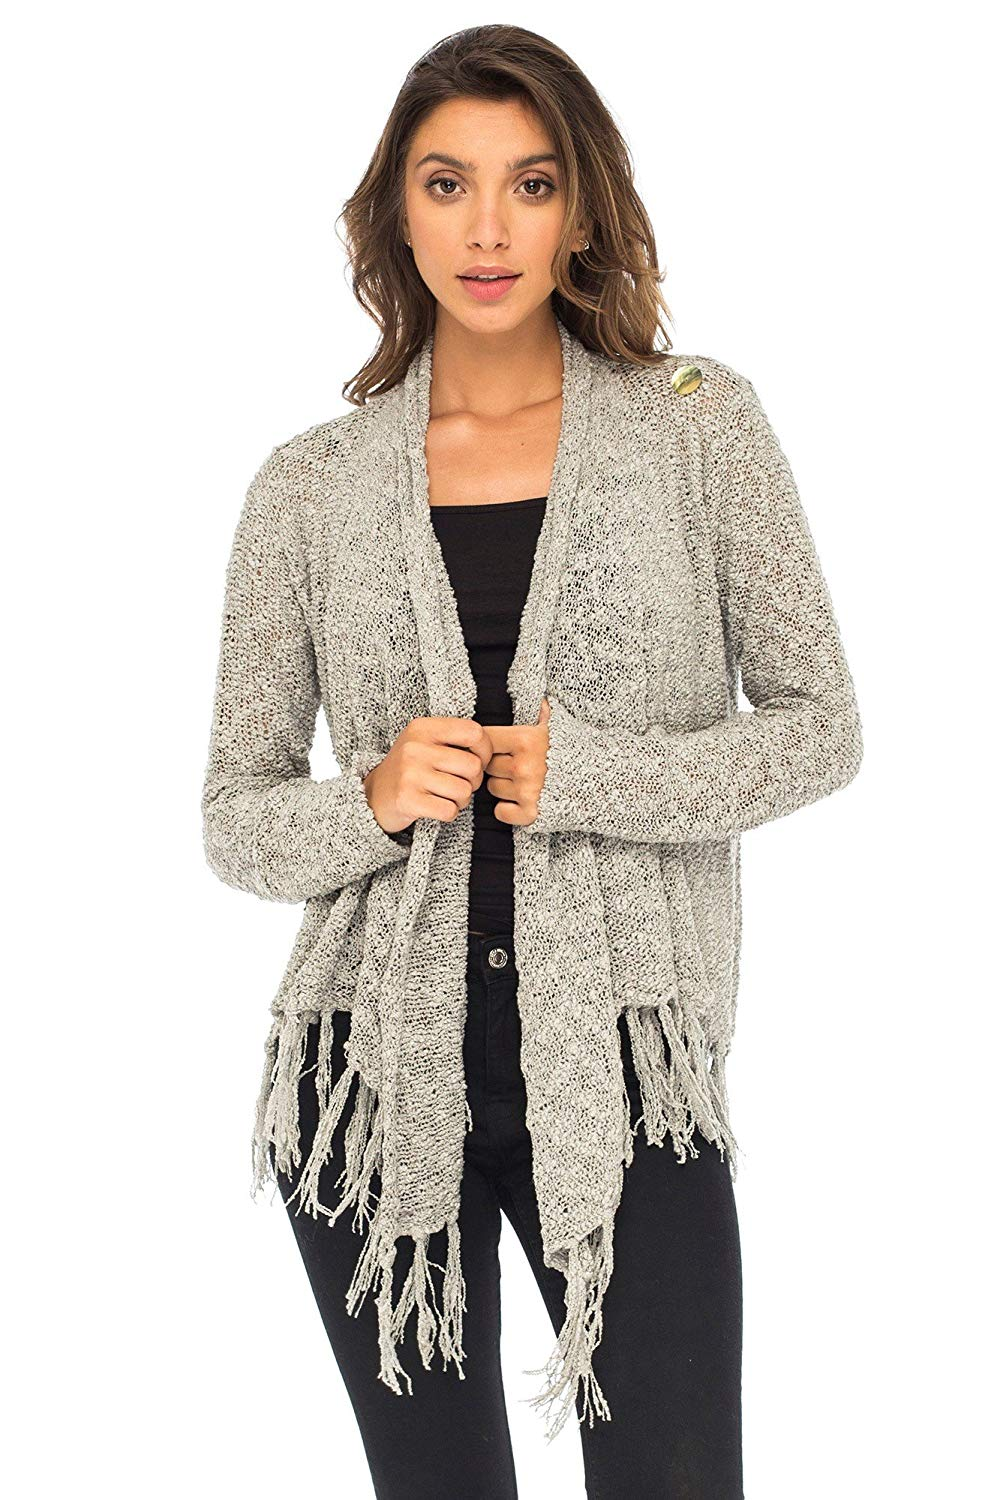 Back From Bali Womens Long Sleeve Cardigan Open Front Shrug Lightweight Fringe Sweater Grey L/XL